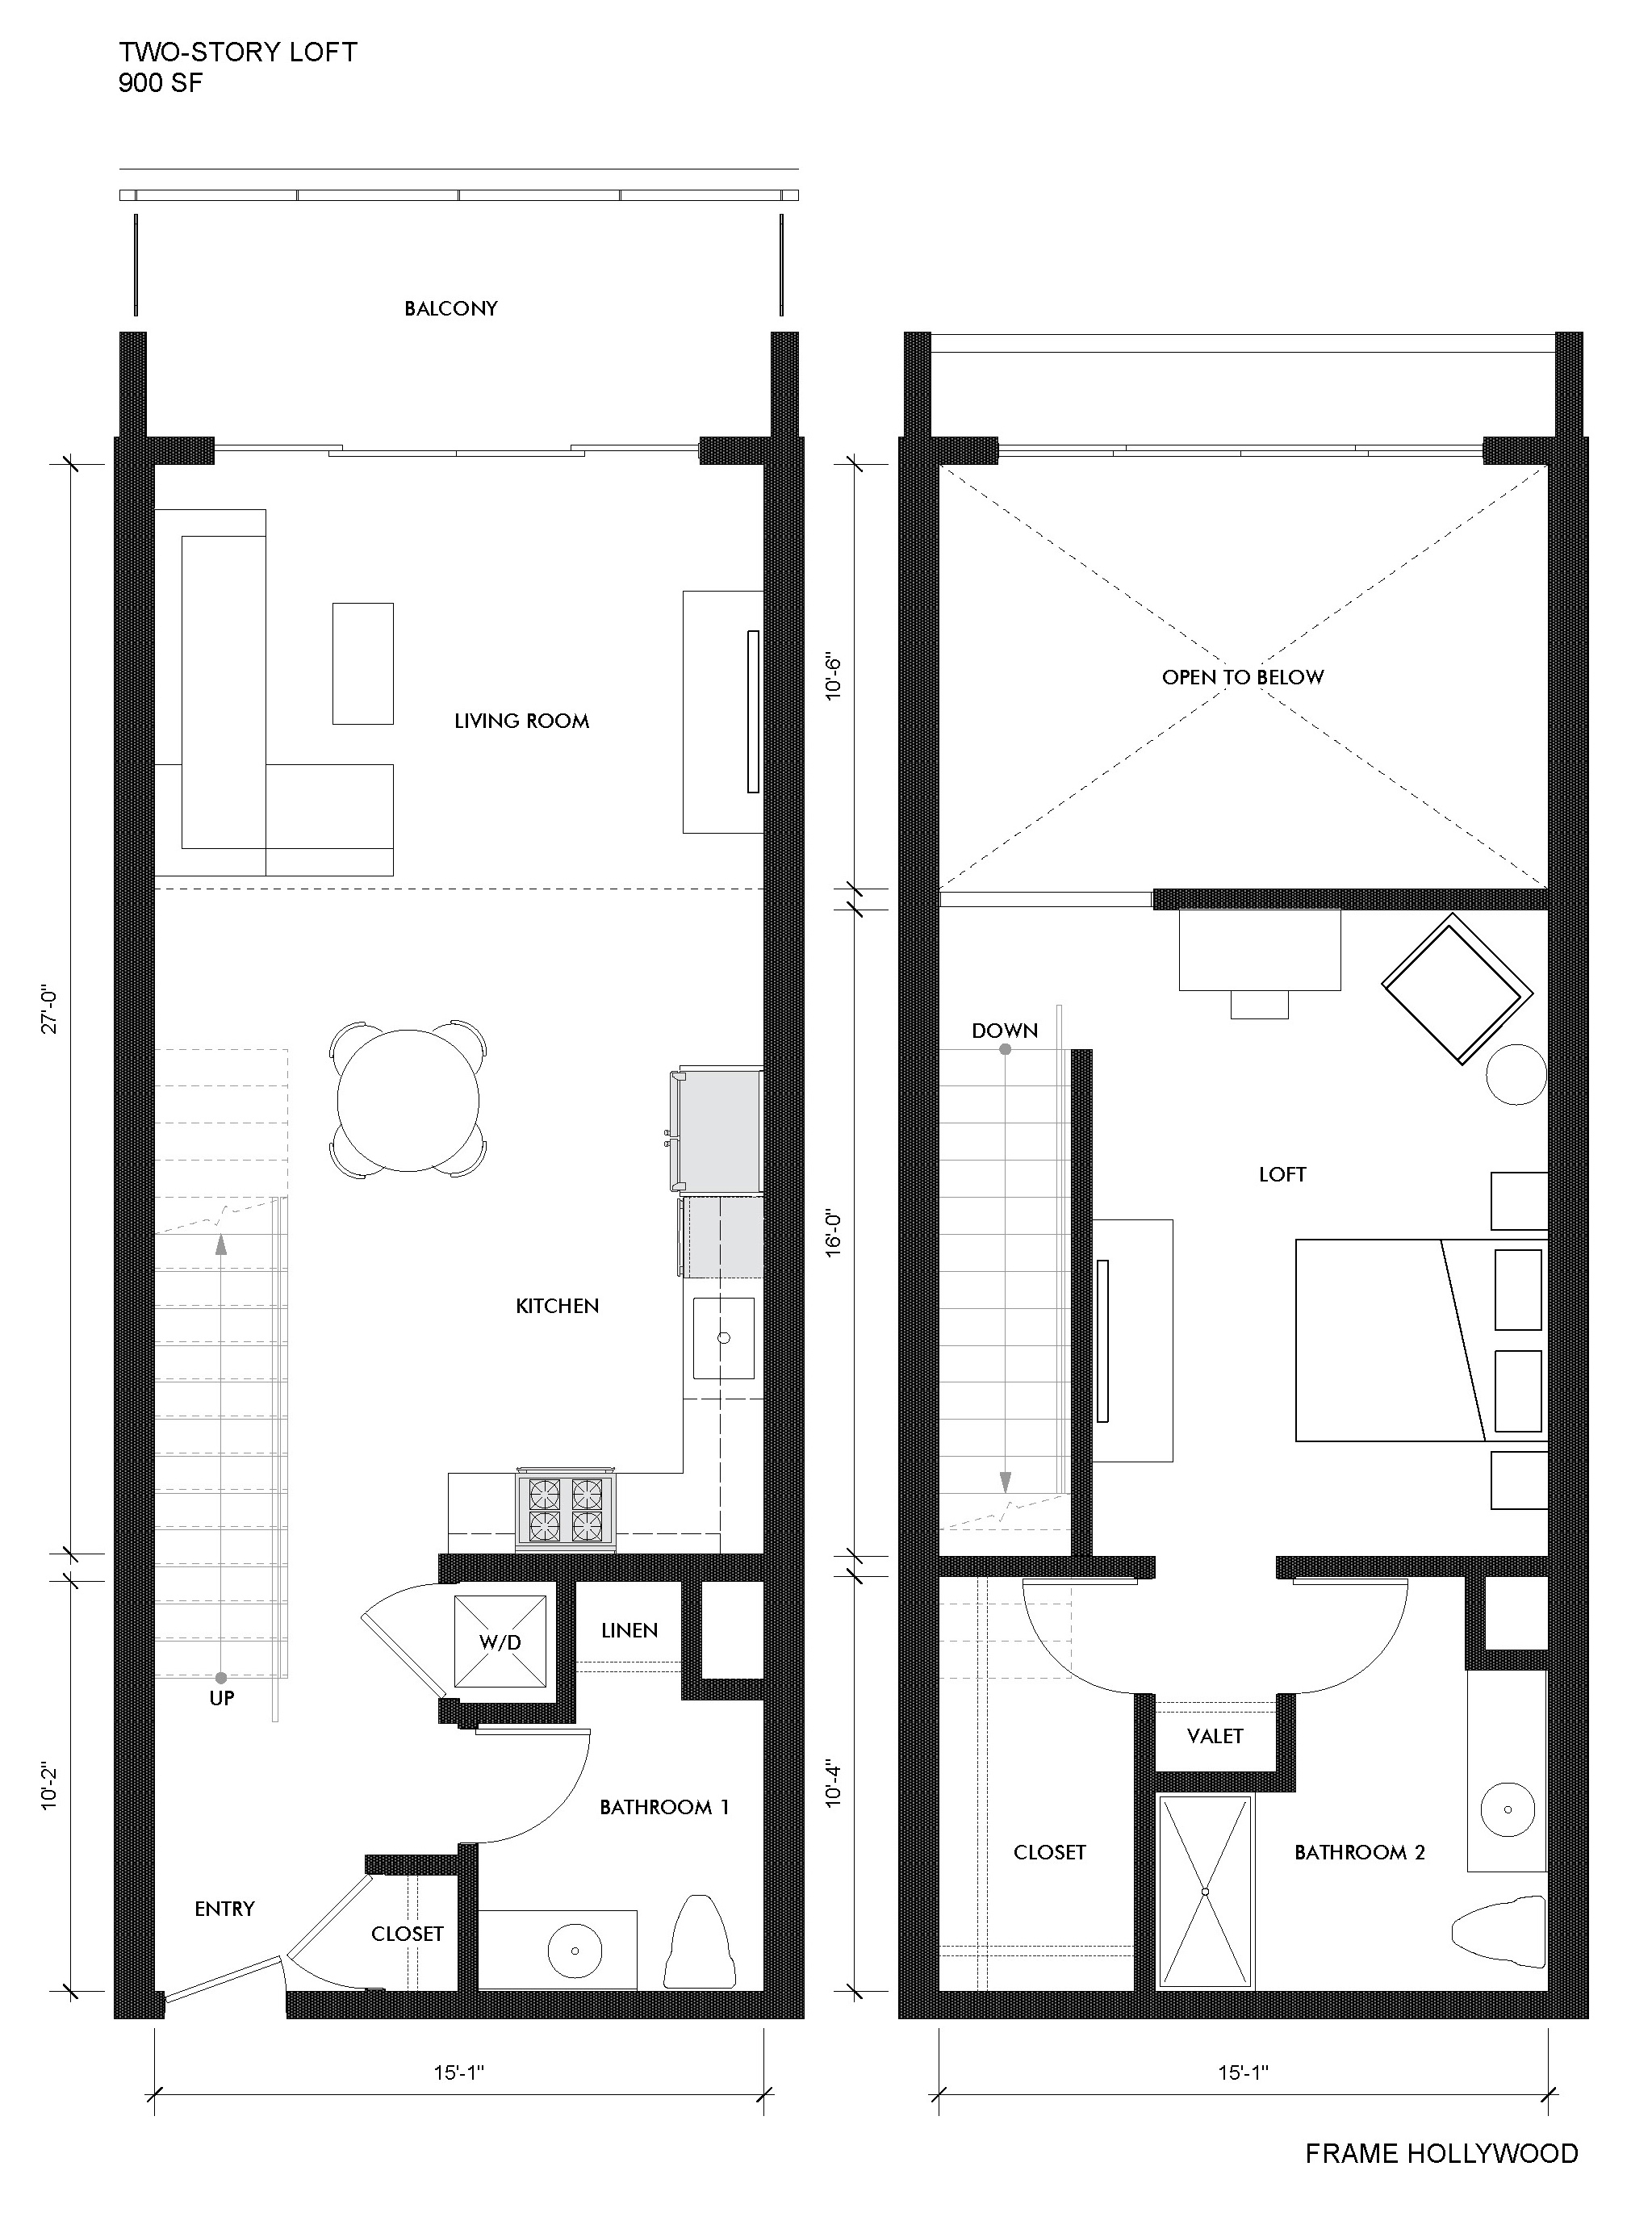 hight resolution of junior 2 story loft with 19 ceilings frame hollywood loft